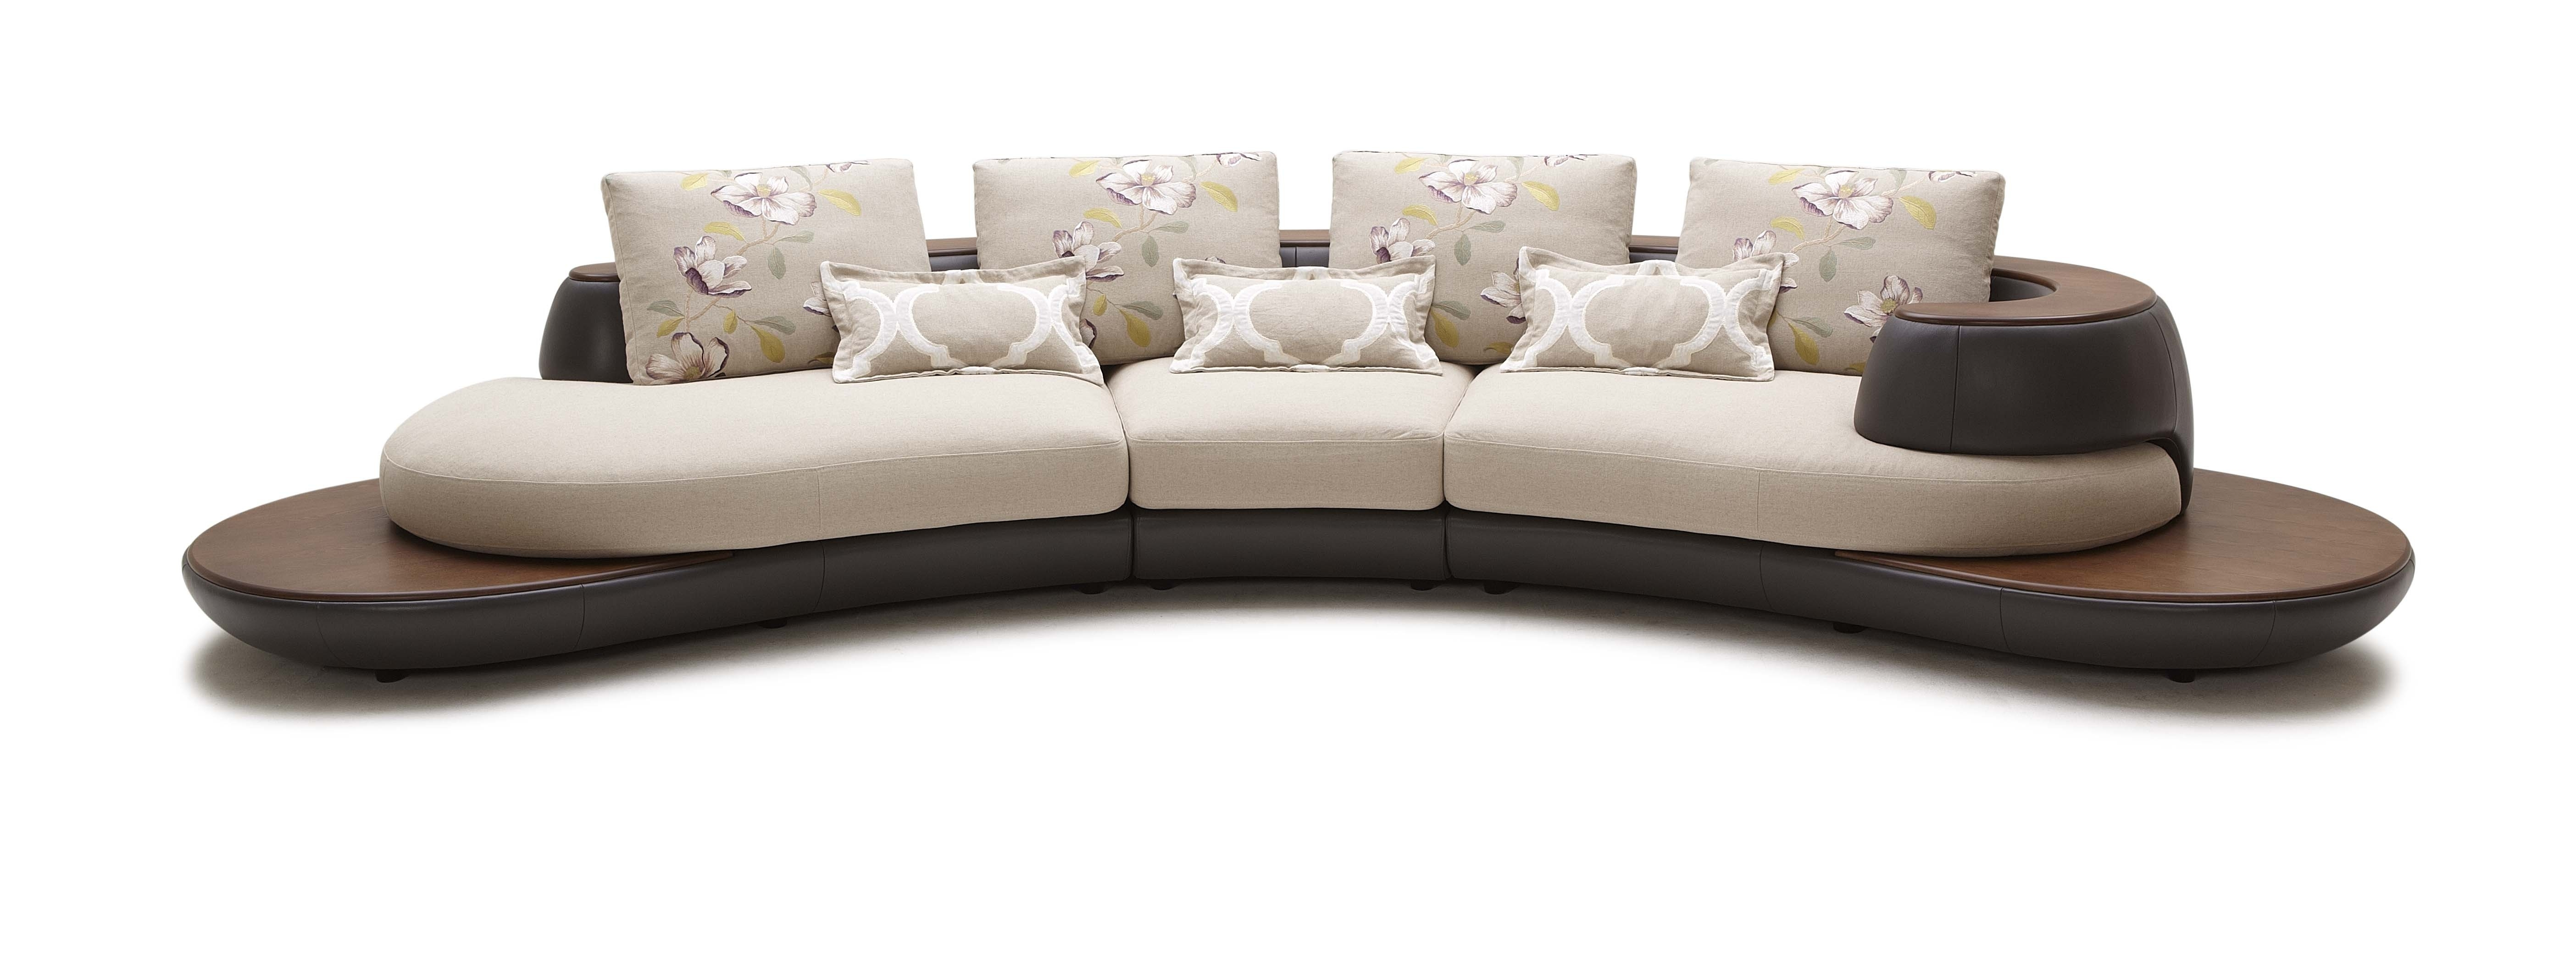 Furniture : 5060 Recliner Sectional Sofa Costco $699 Corner Couch For Joining Hardware Sectional Sofas (View 10 of 10)